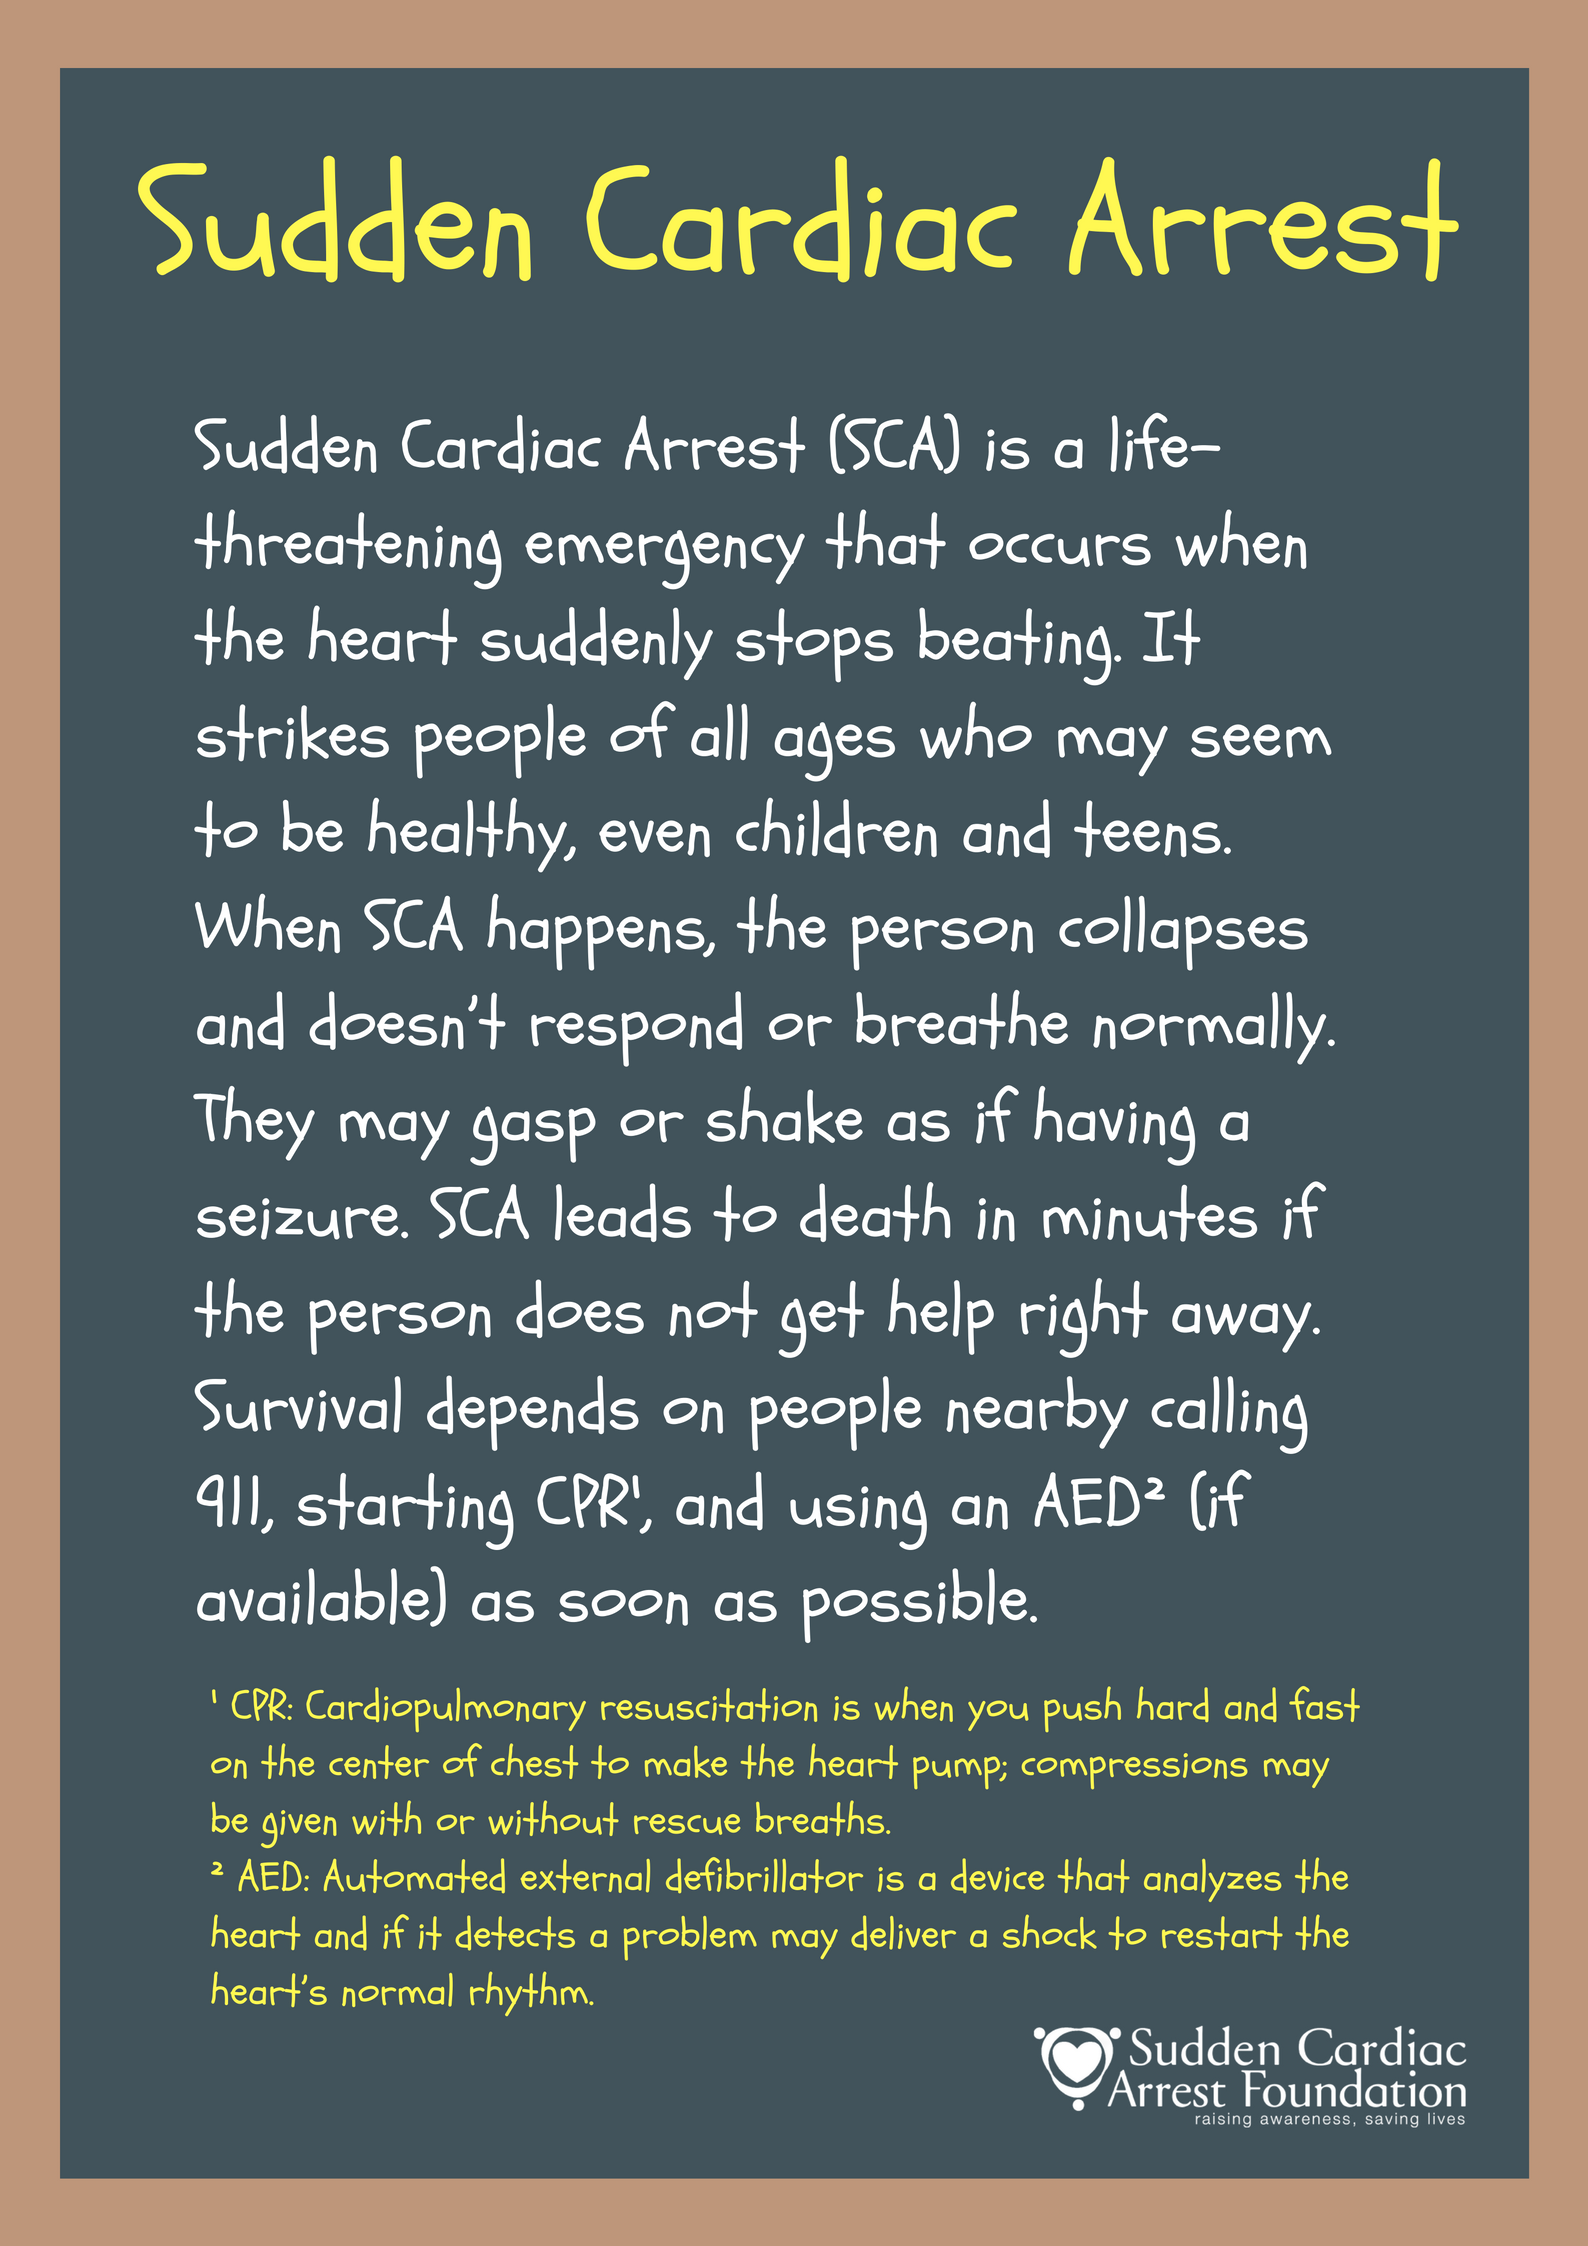 2017 study | sudden cardiac arrest foundation